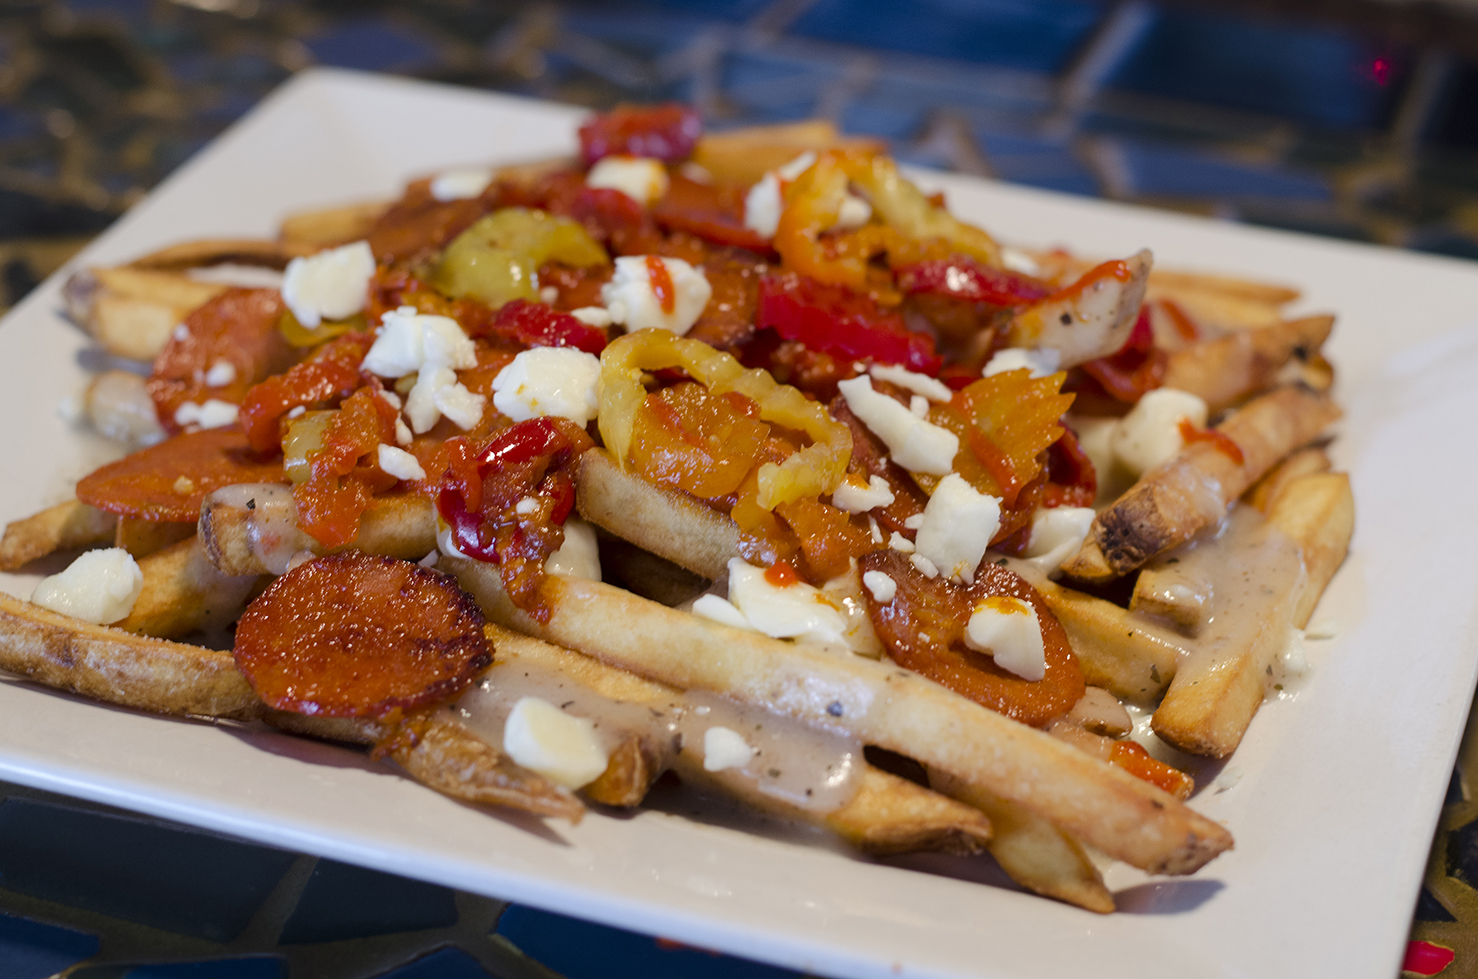 Hot Lips poutine from Phog Lounge